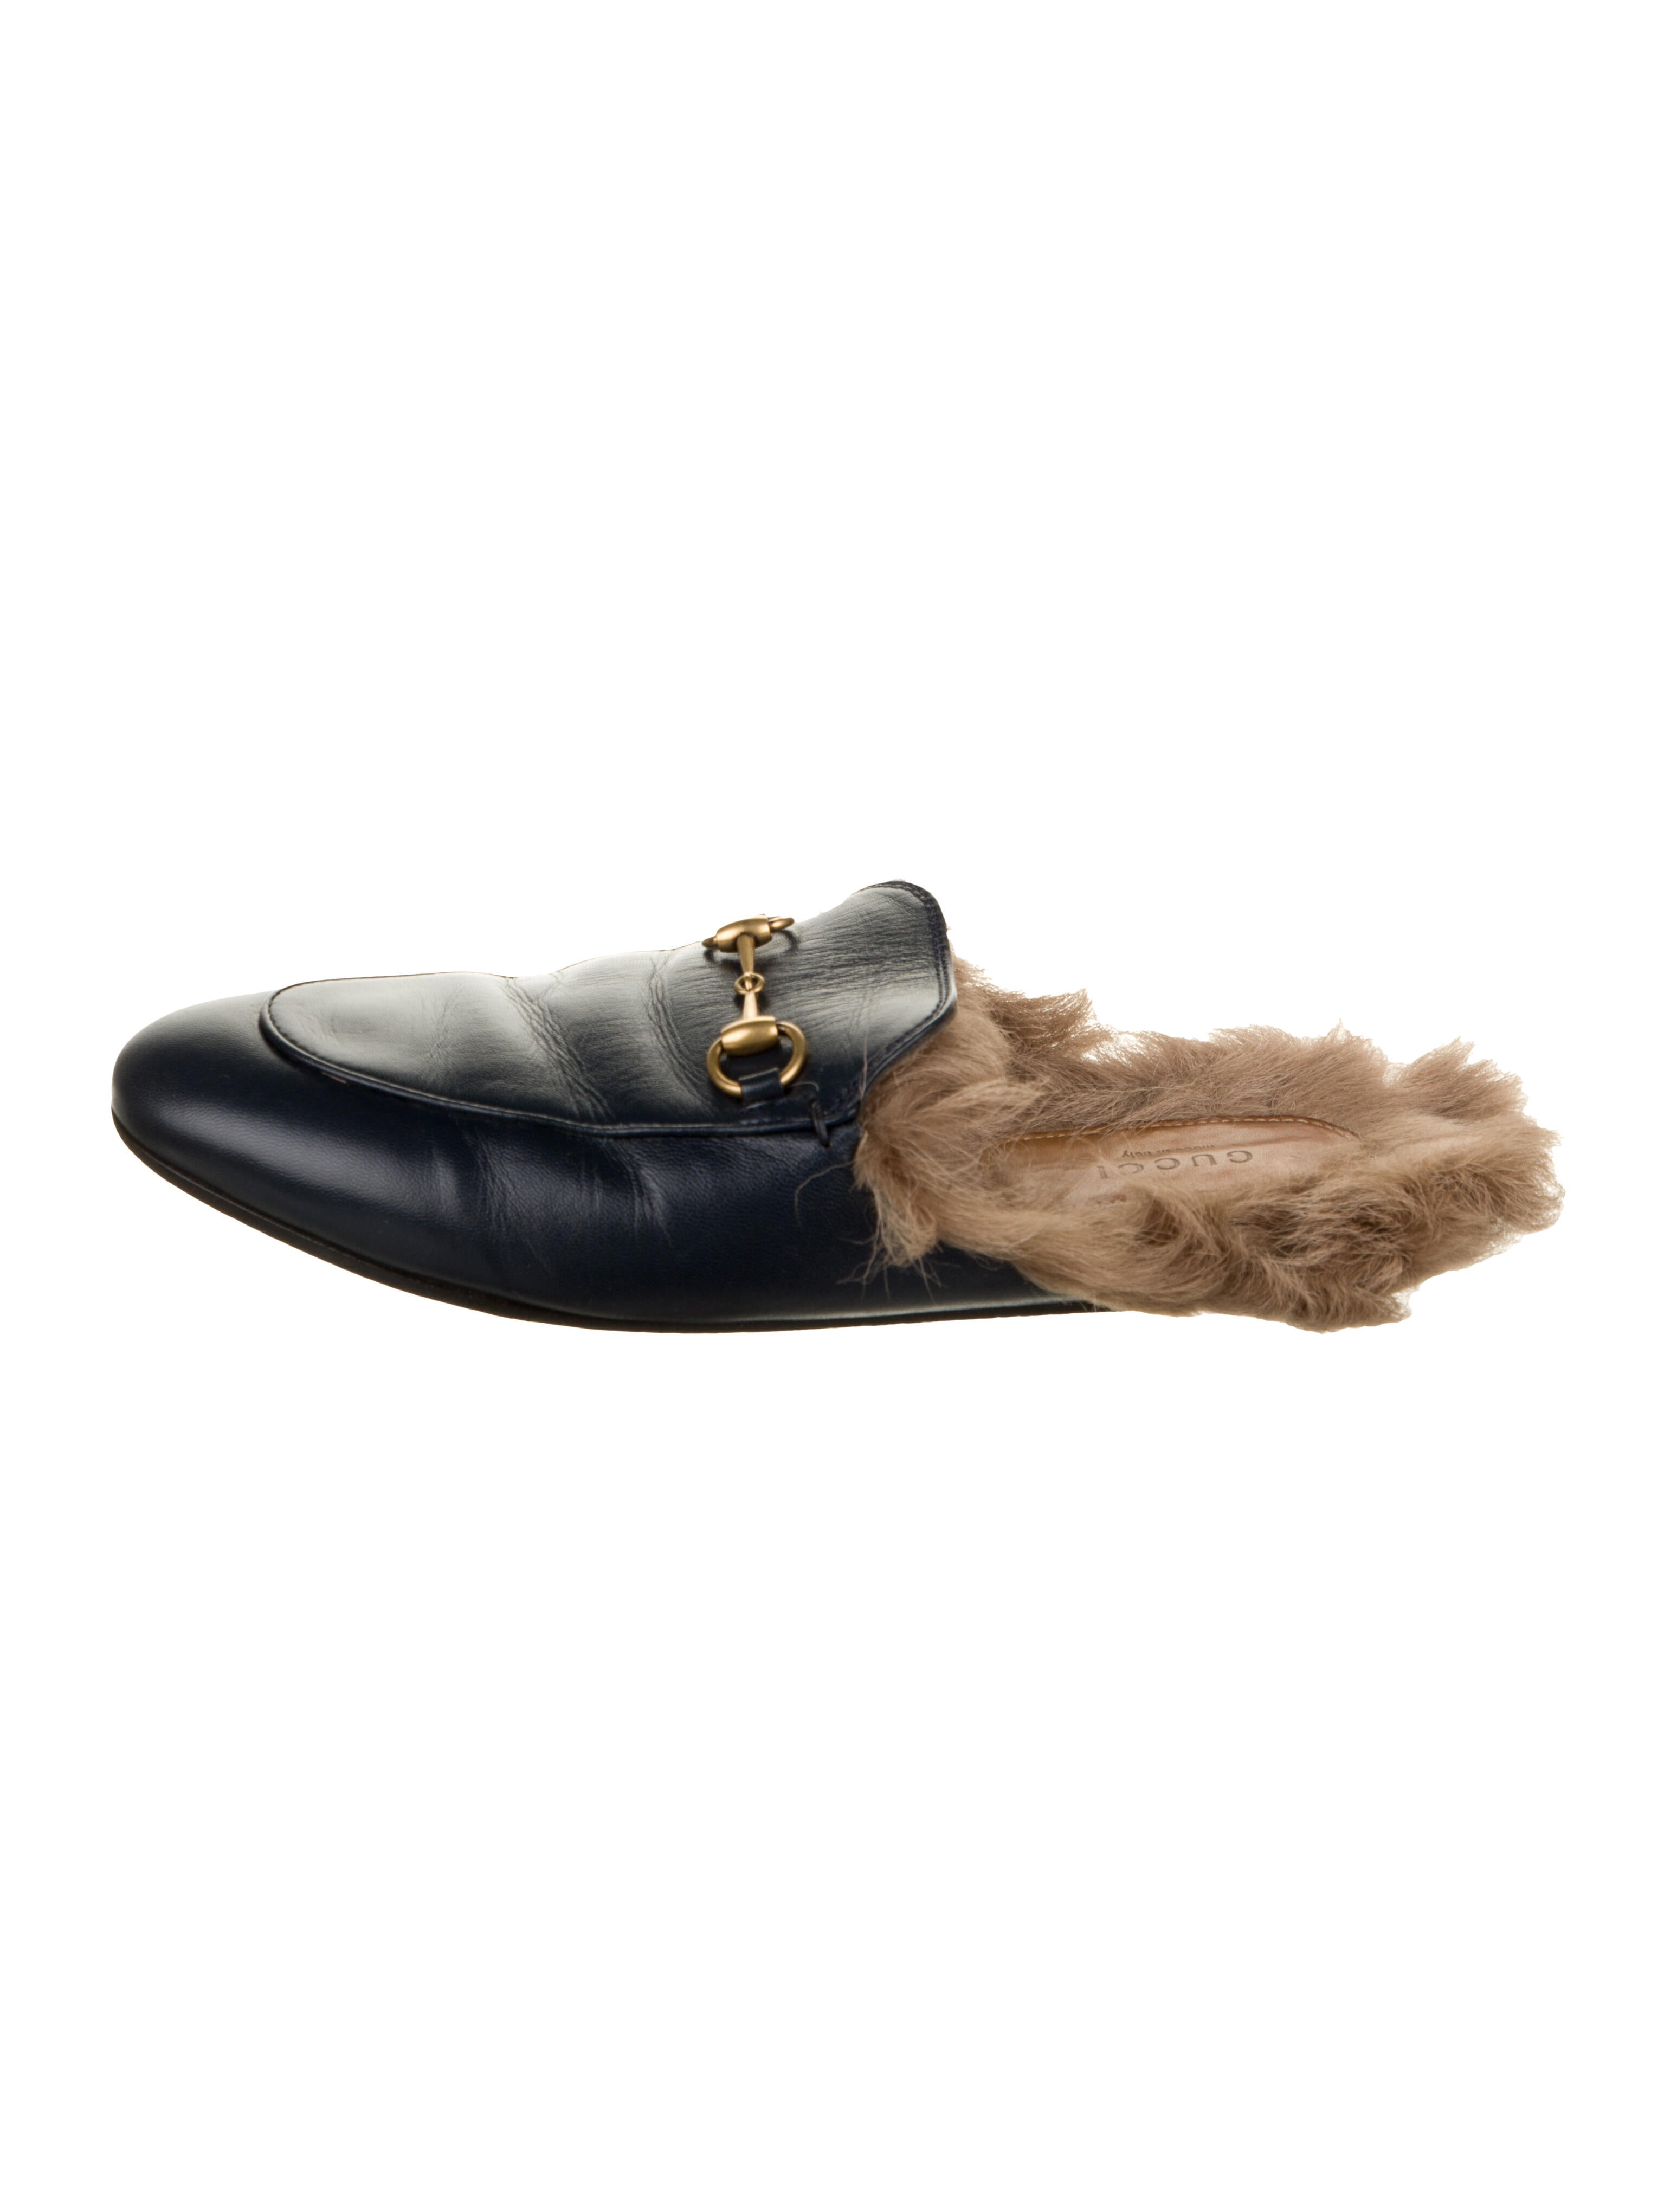 gucci princetown loafer in tian garden